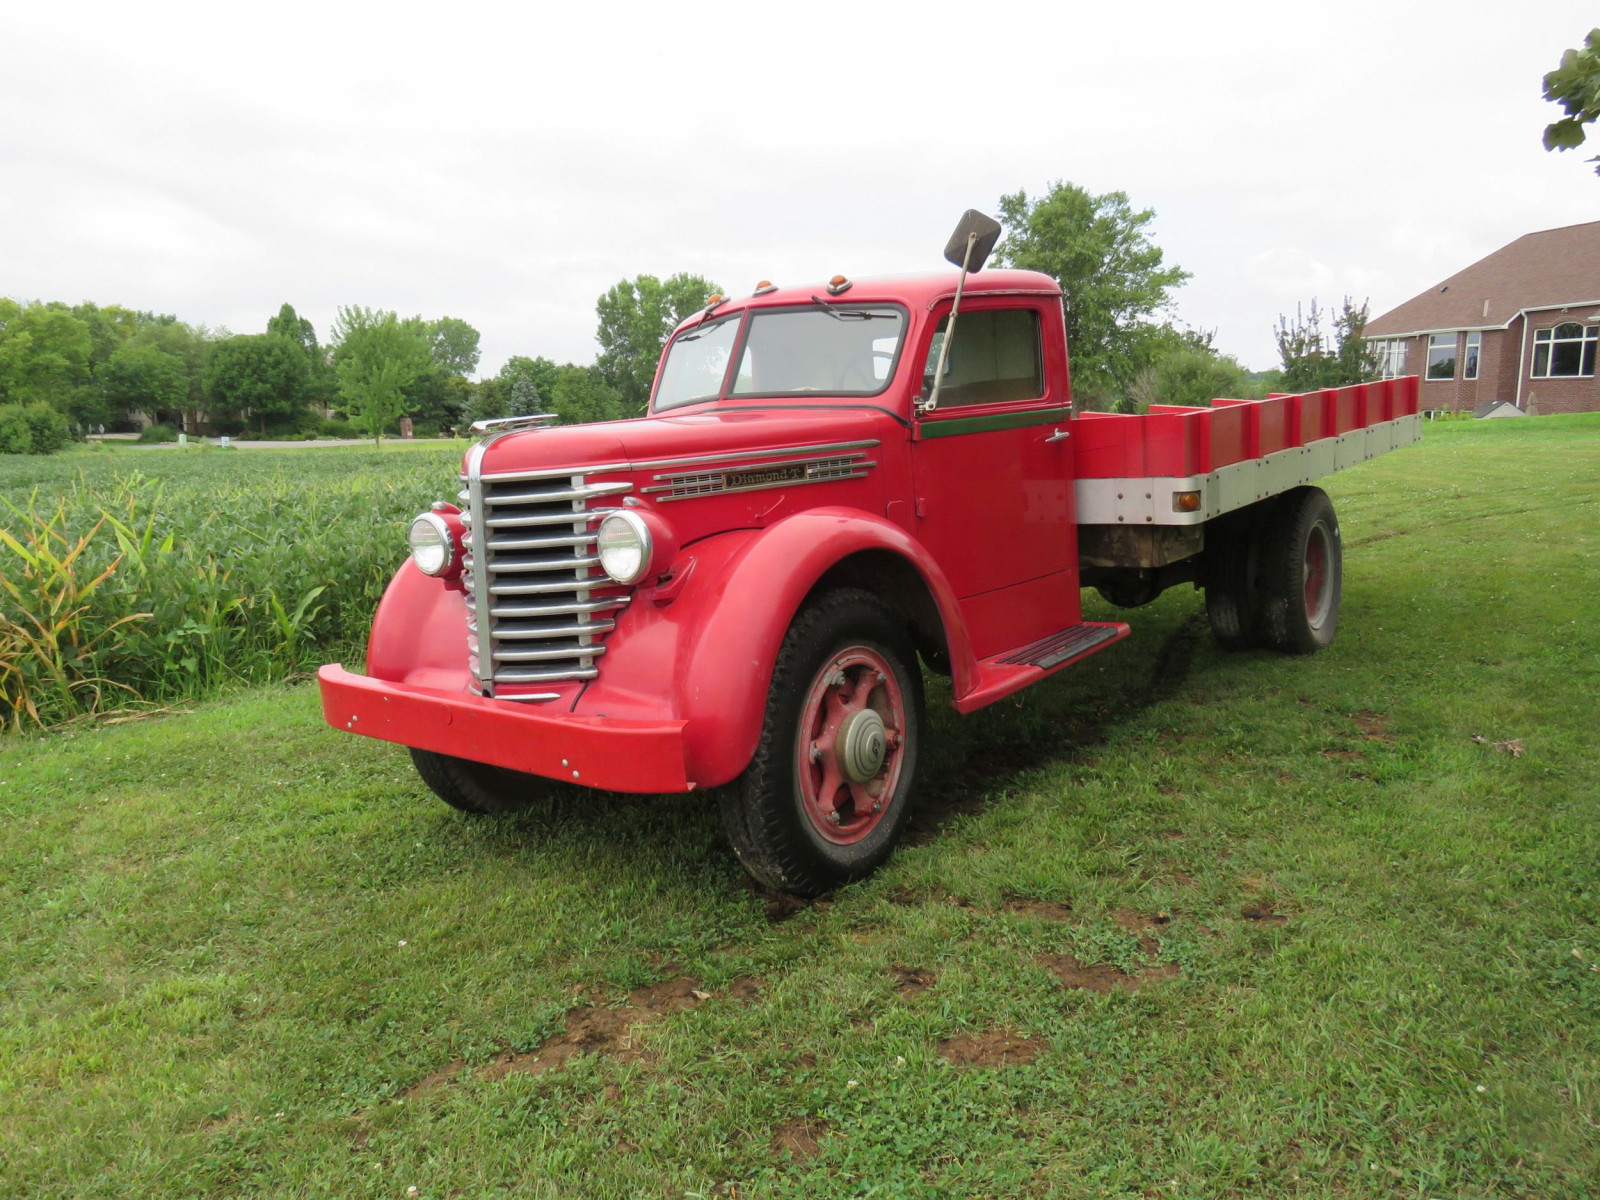 1945 Diamond T Truck - Image 1